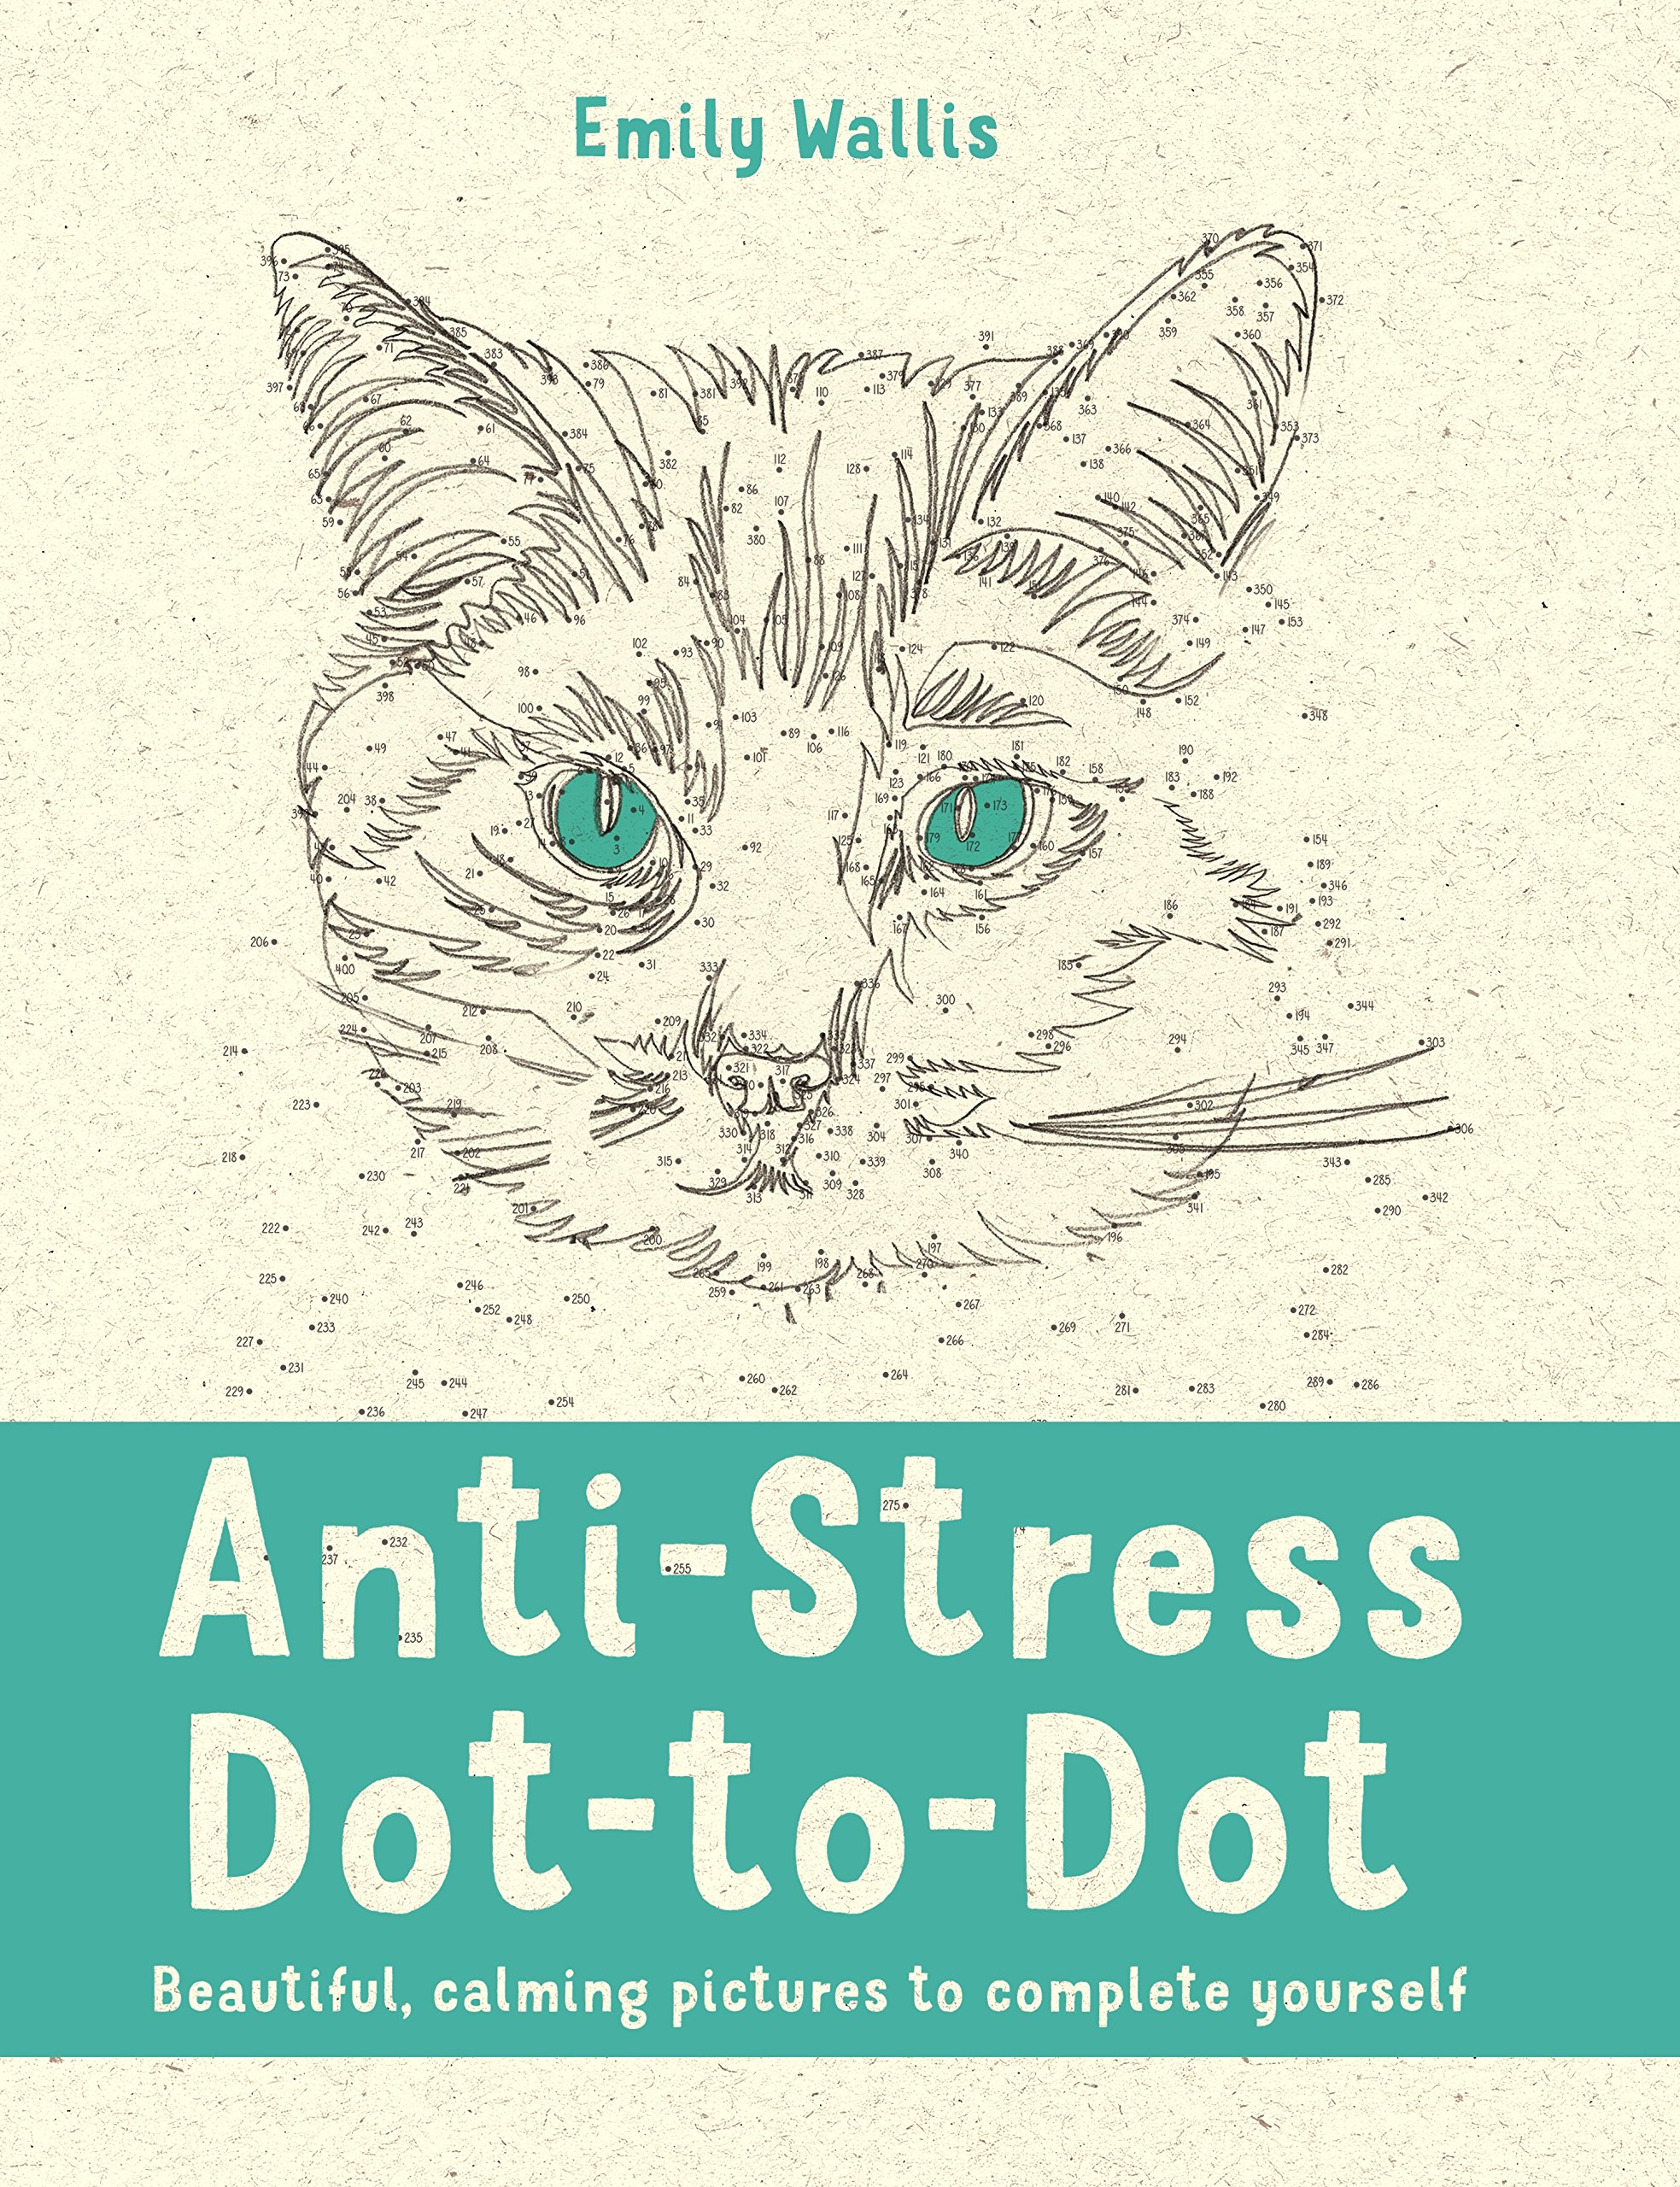 Anti stress colouring book asda - Anti Stress Dot To Dot Beautiful Calming Pictures To Complete Yourself Colouring Books Amazon Co Uk Emily Wallis 9780752265865 Books